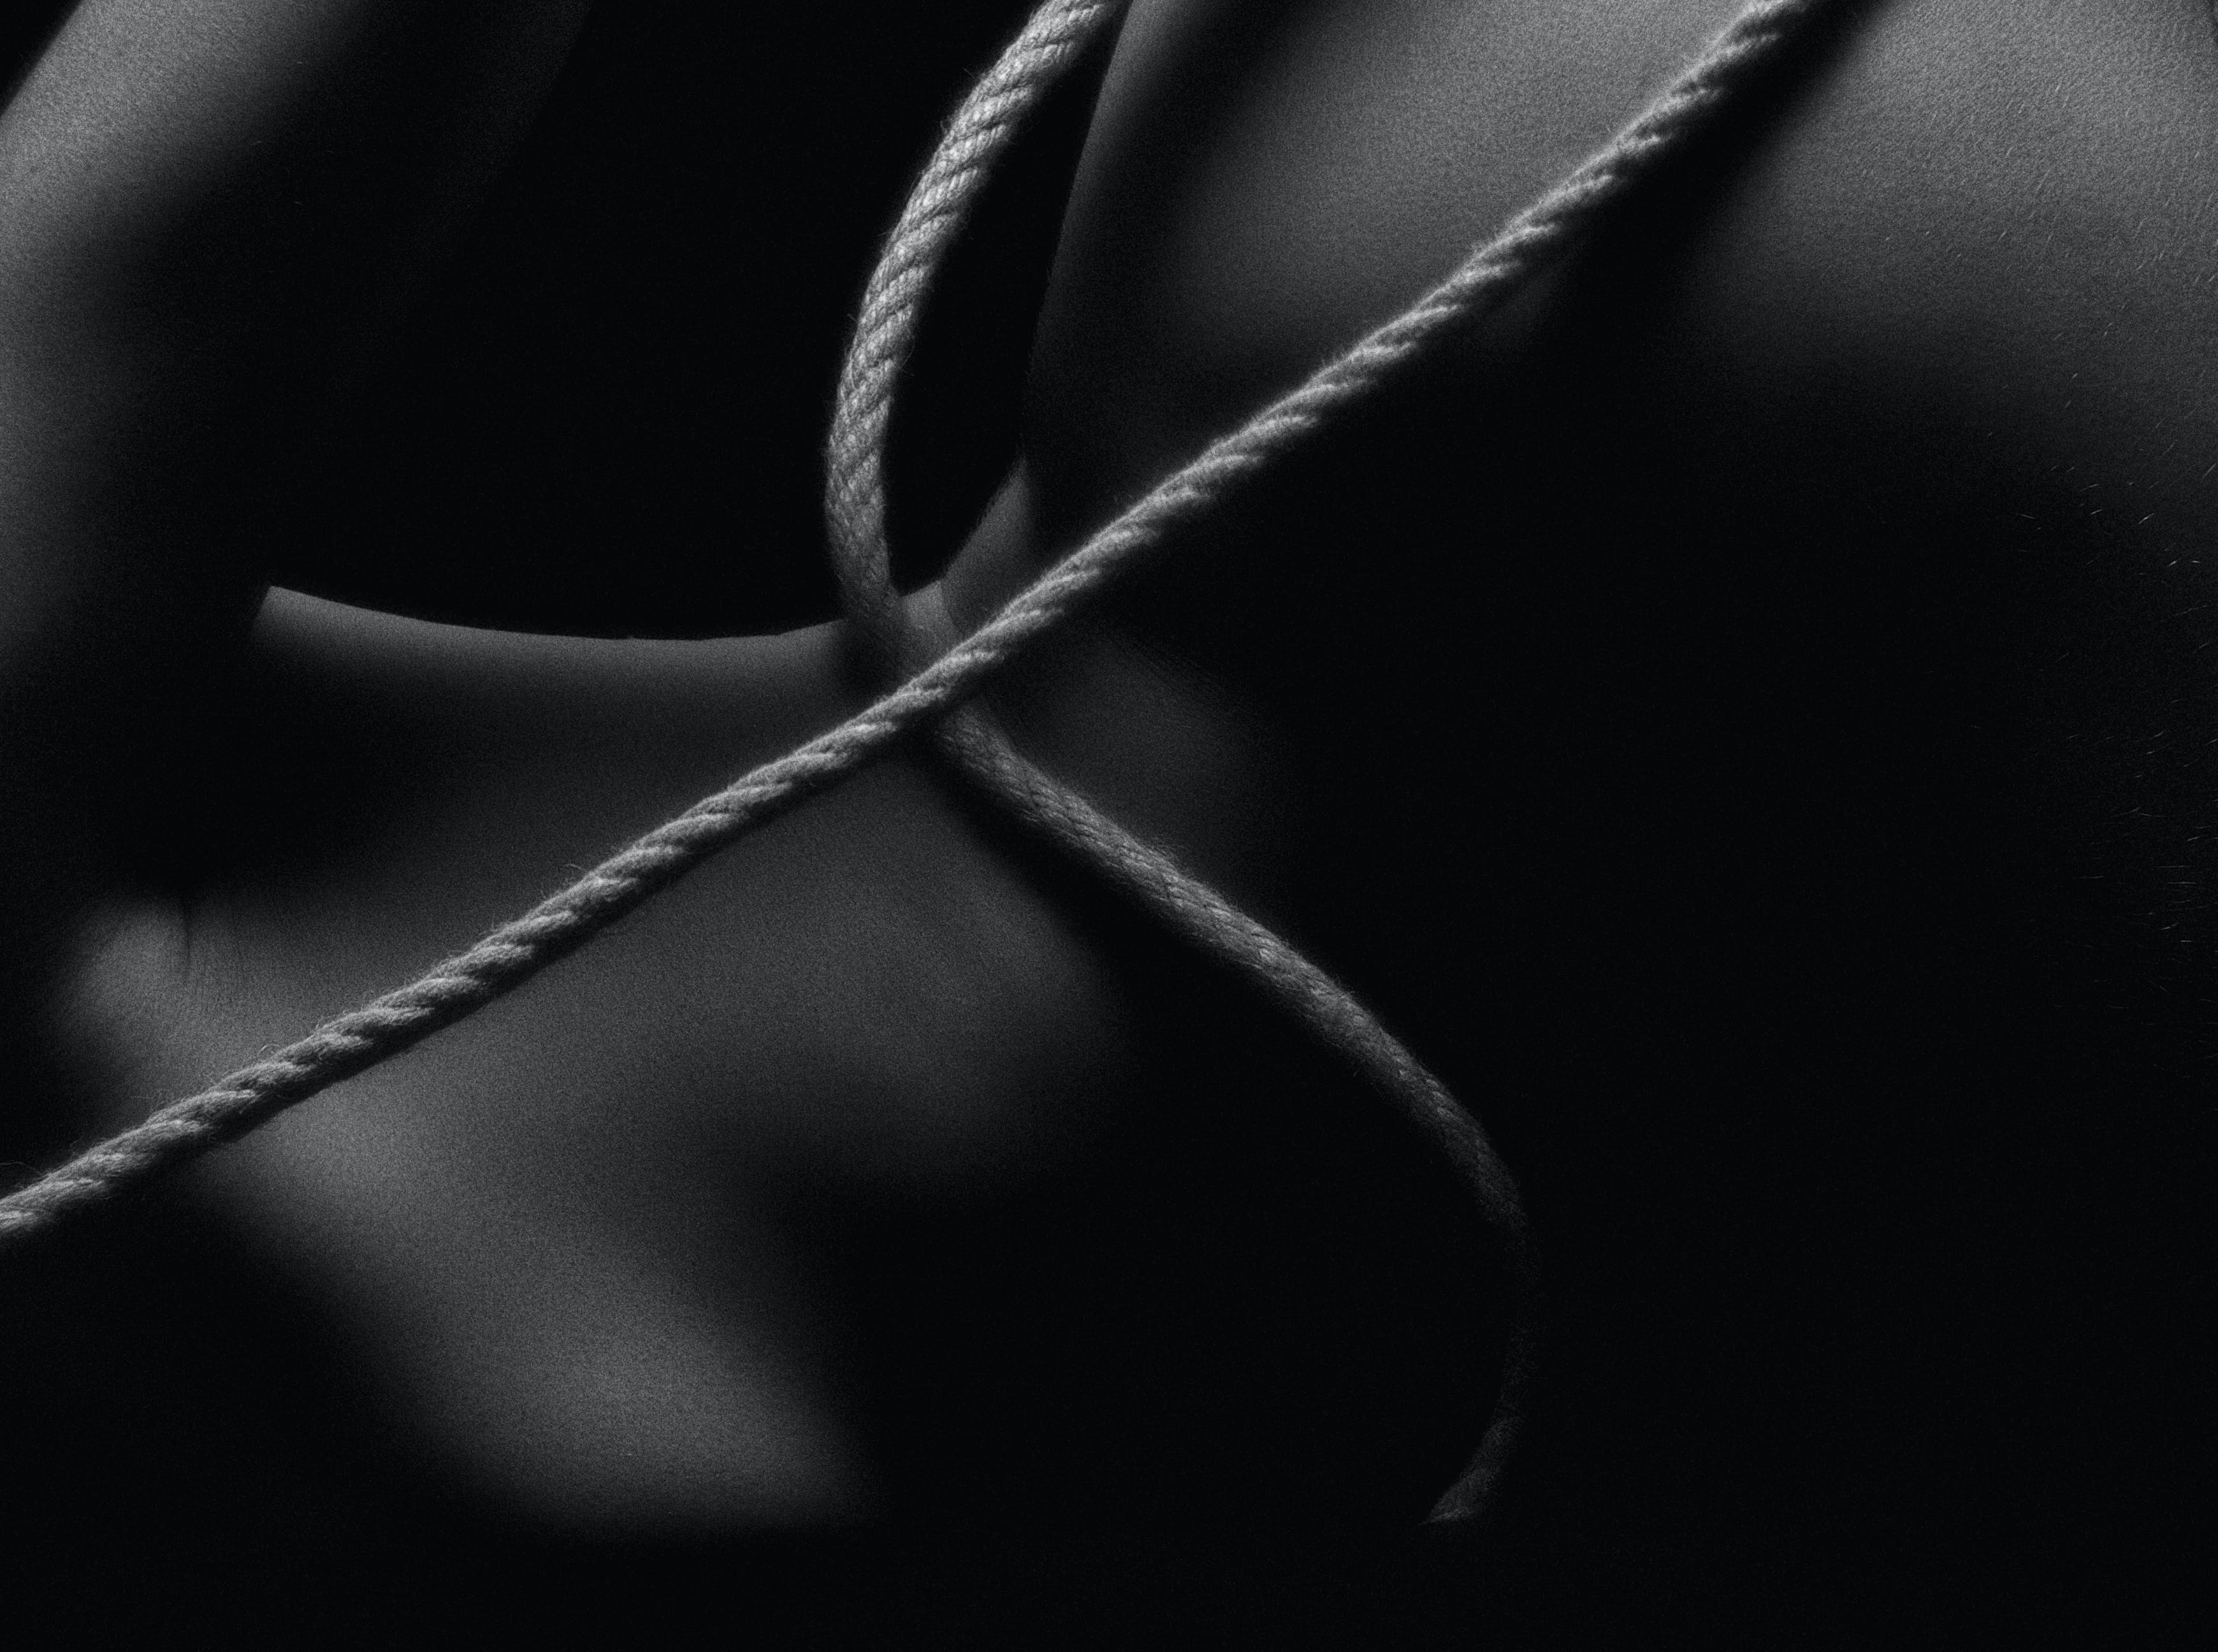 Monochrome Photo of Rope On Body